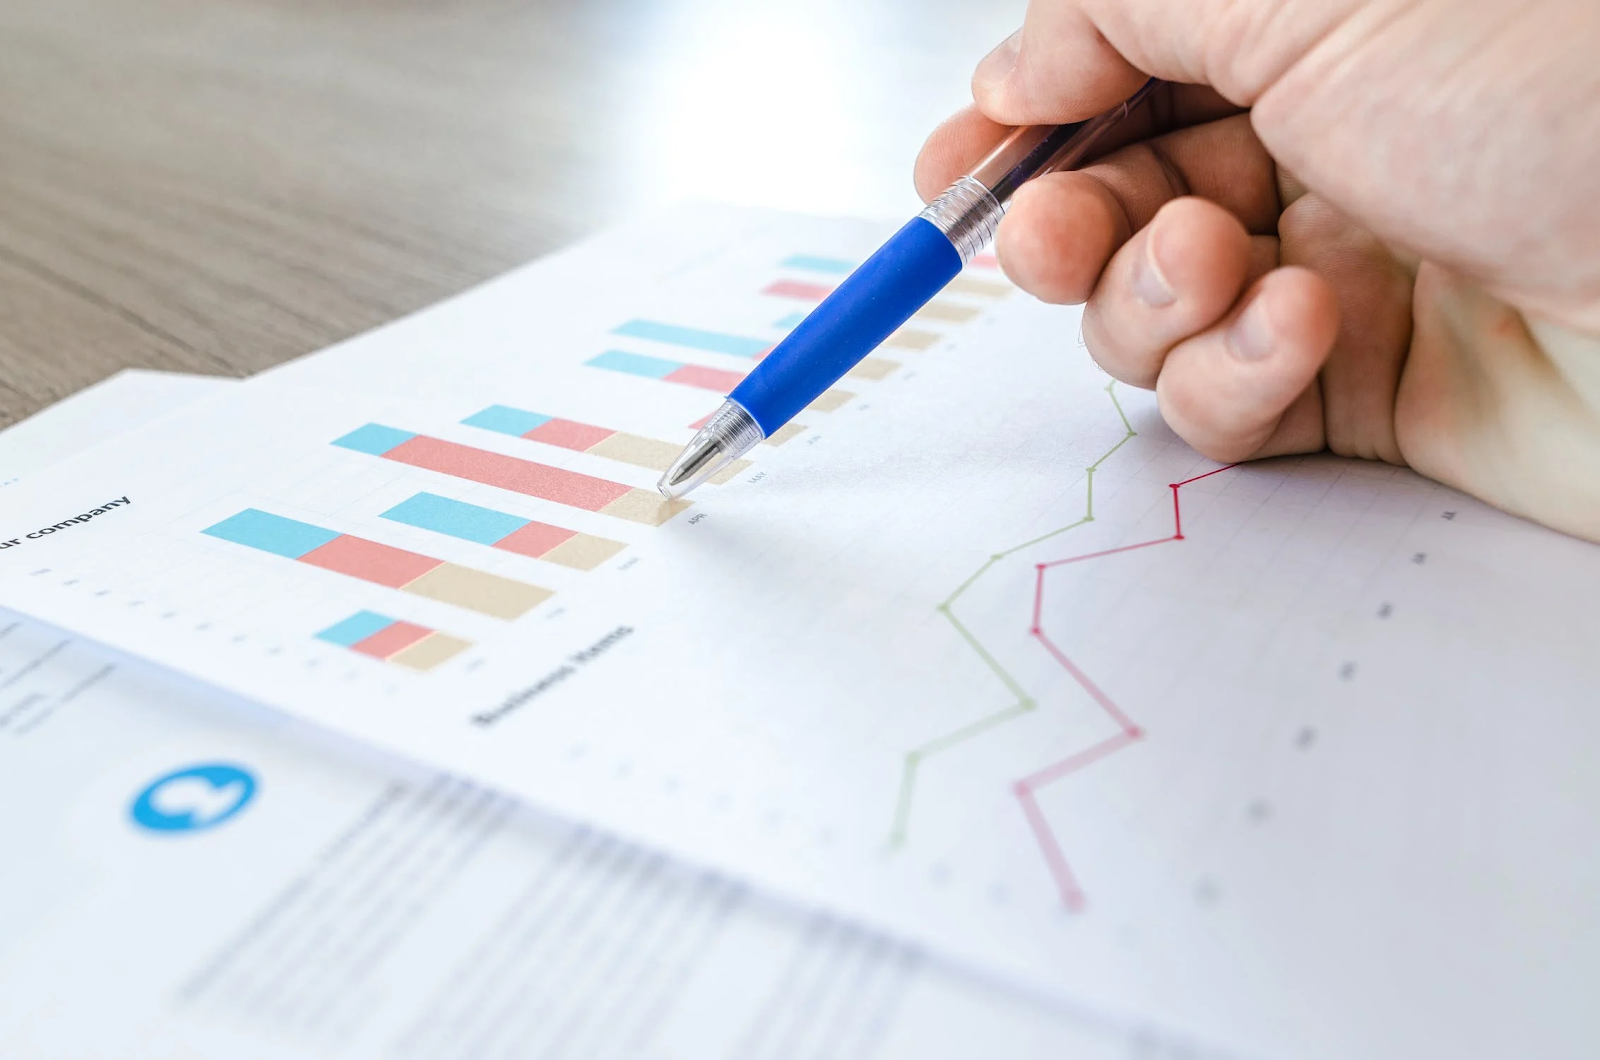 Person holding blue pen pointing at graphs